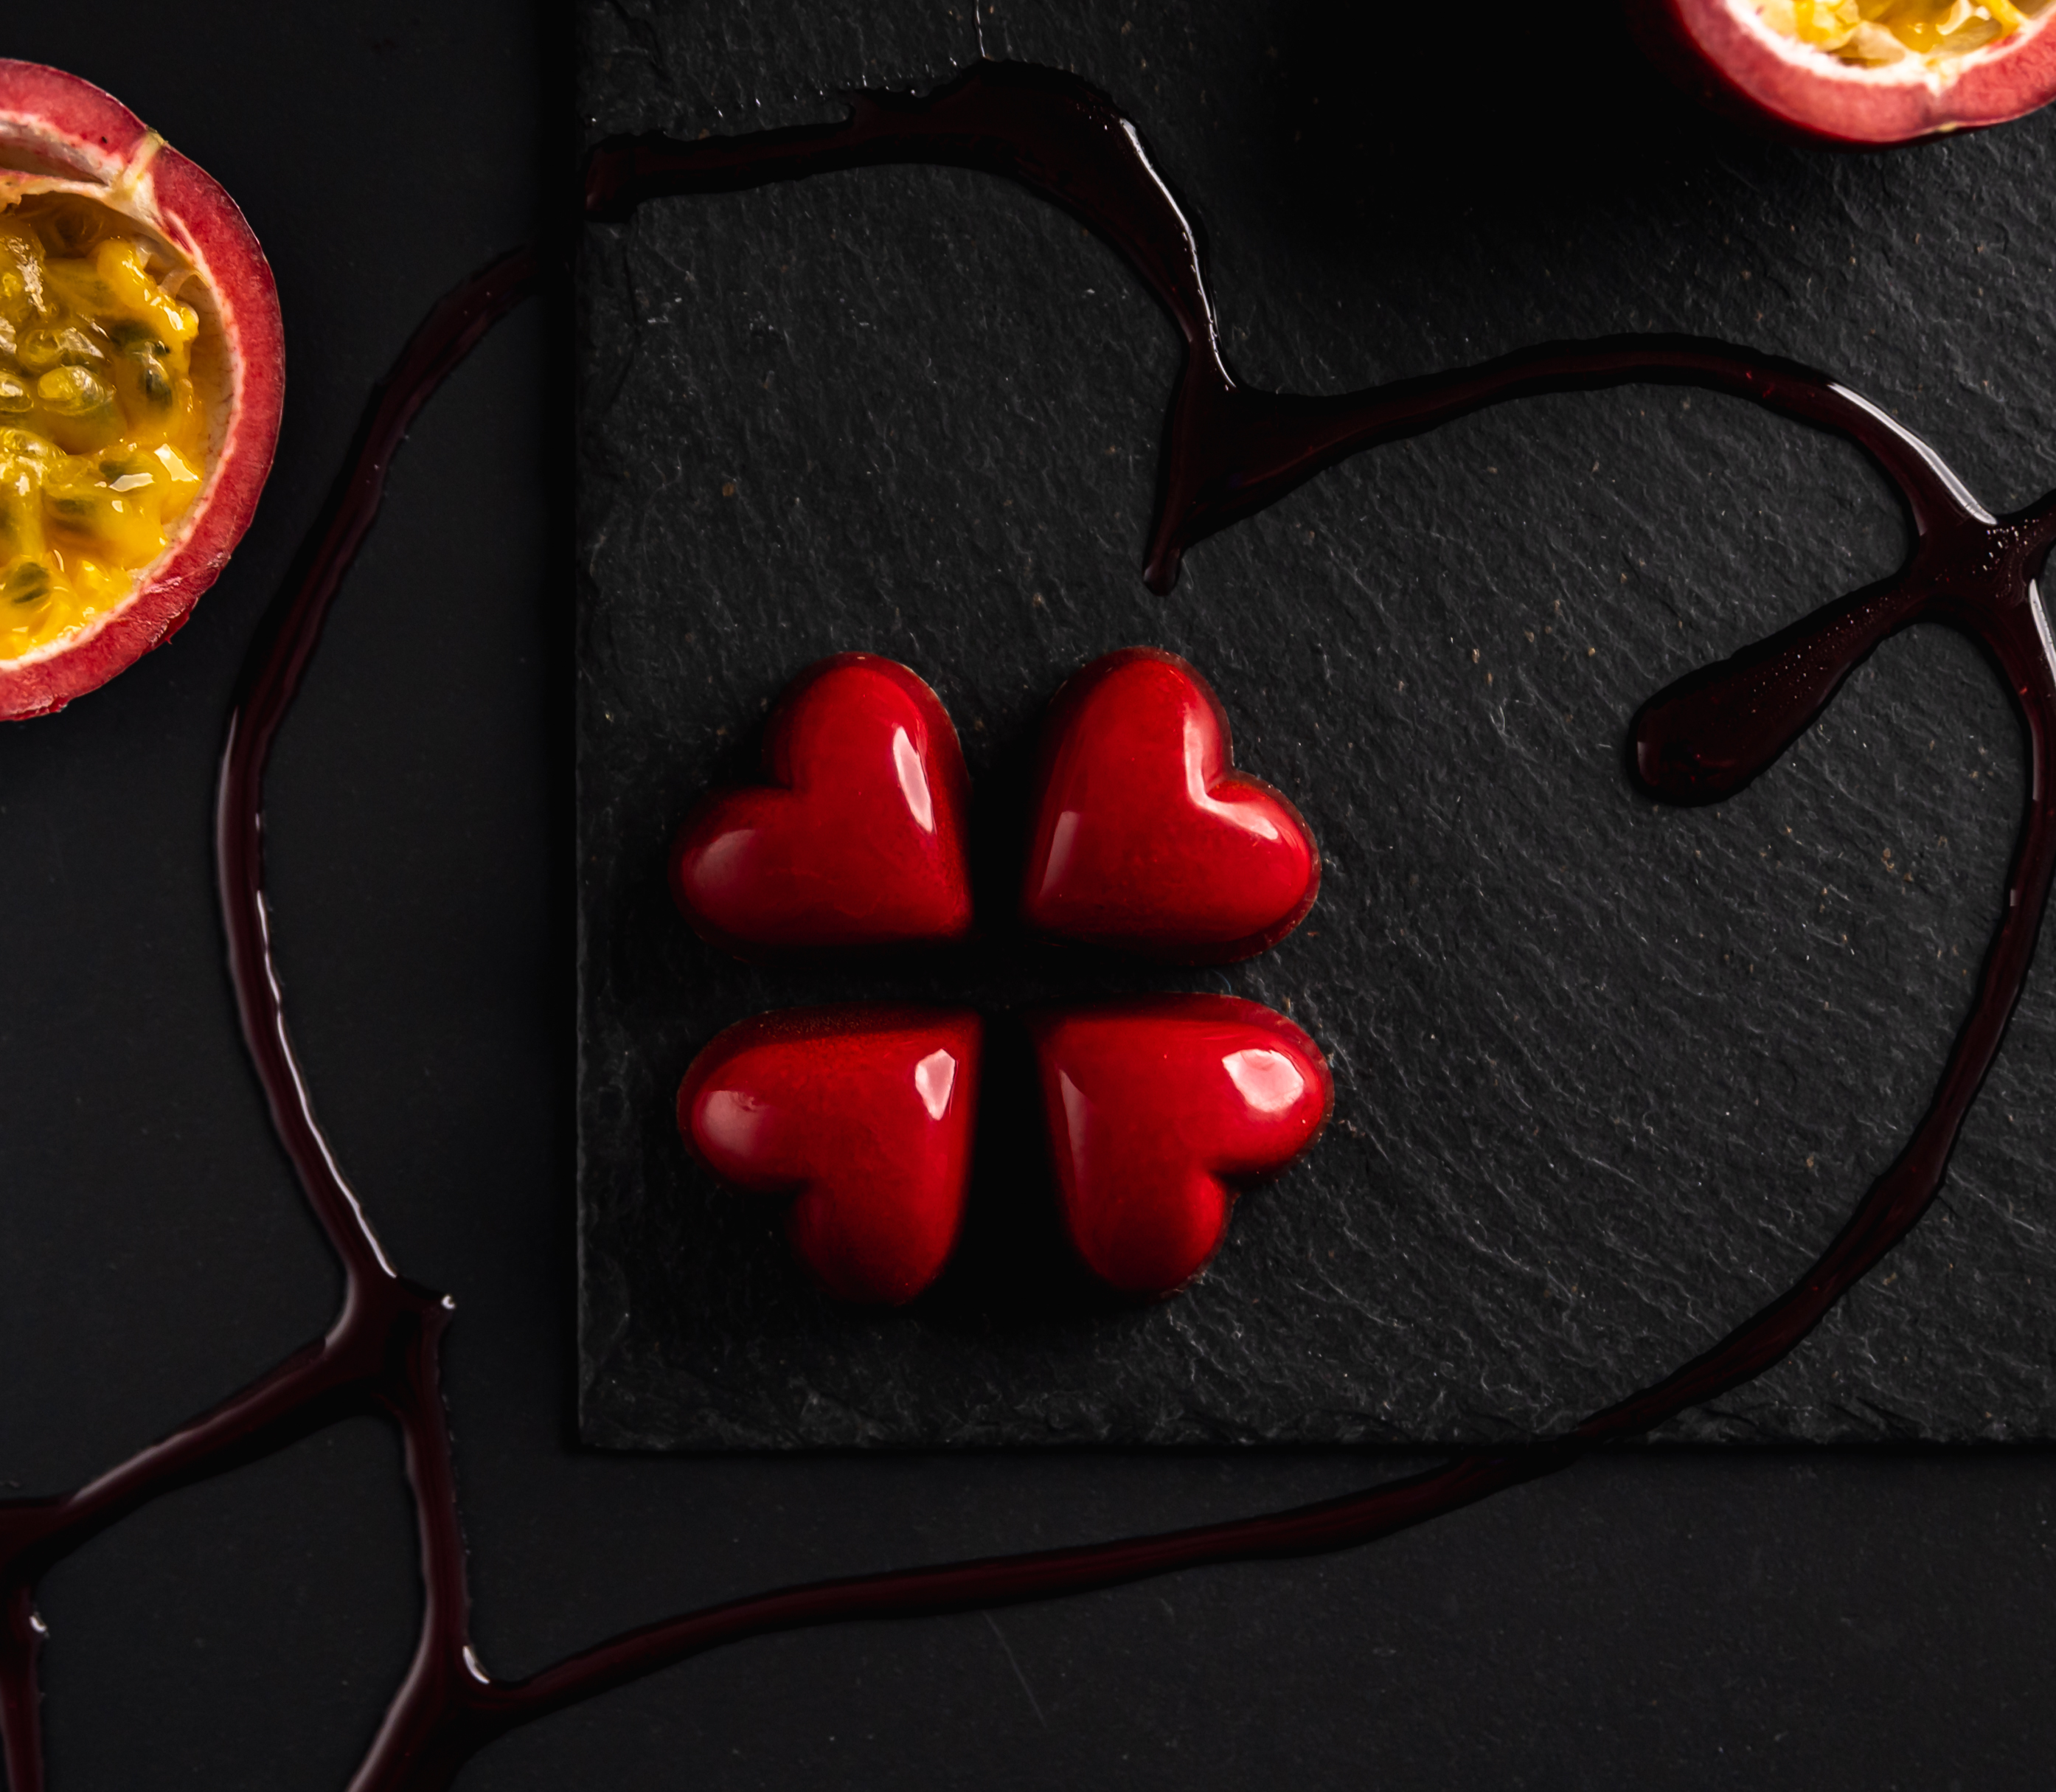 4 Milk chocolate Hearts filled with Passionfruit white chocolate caramel.